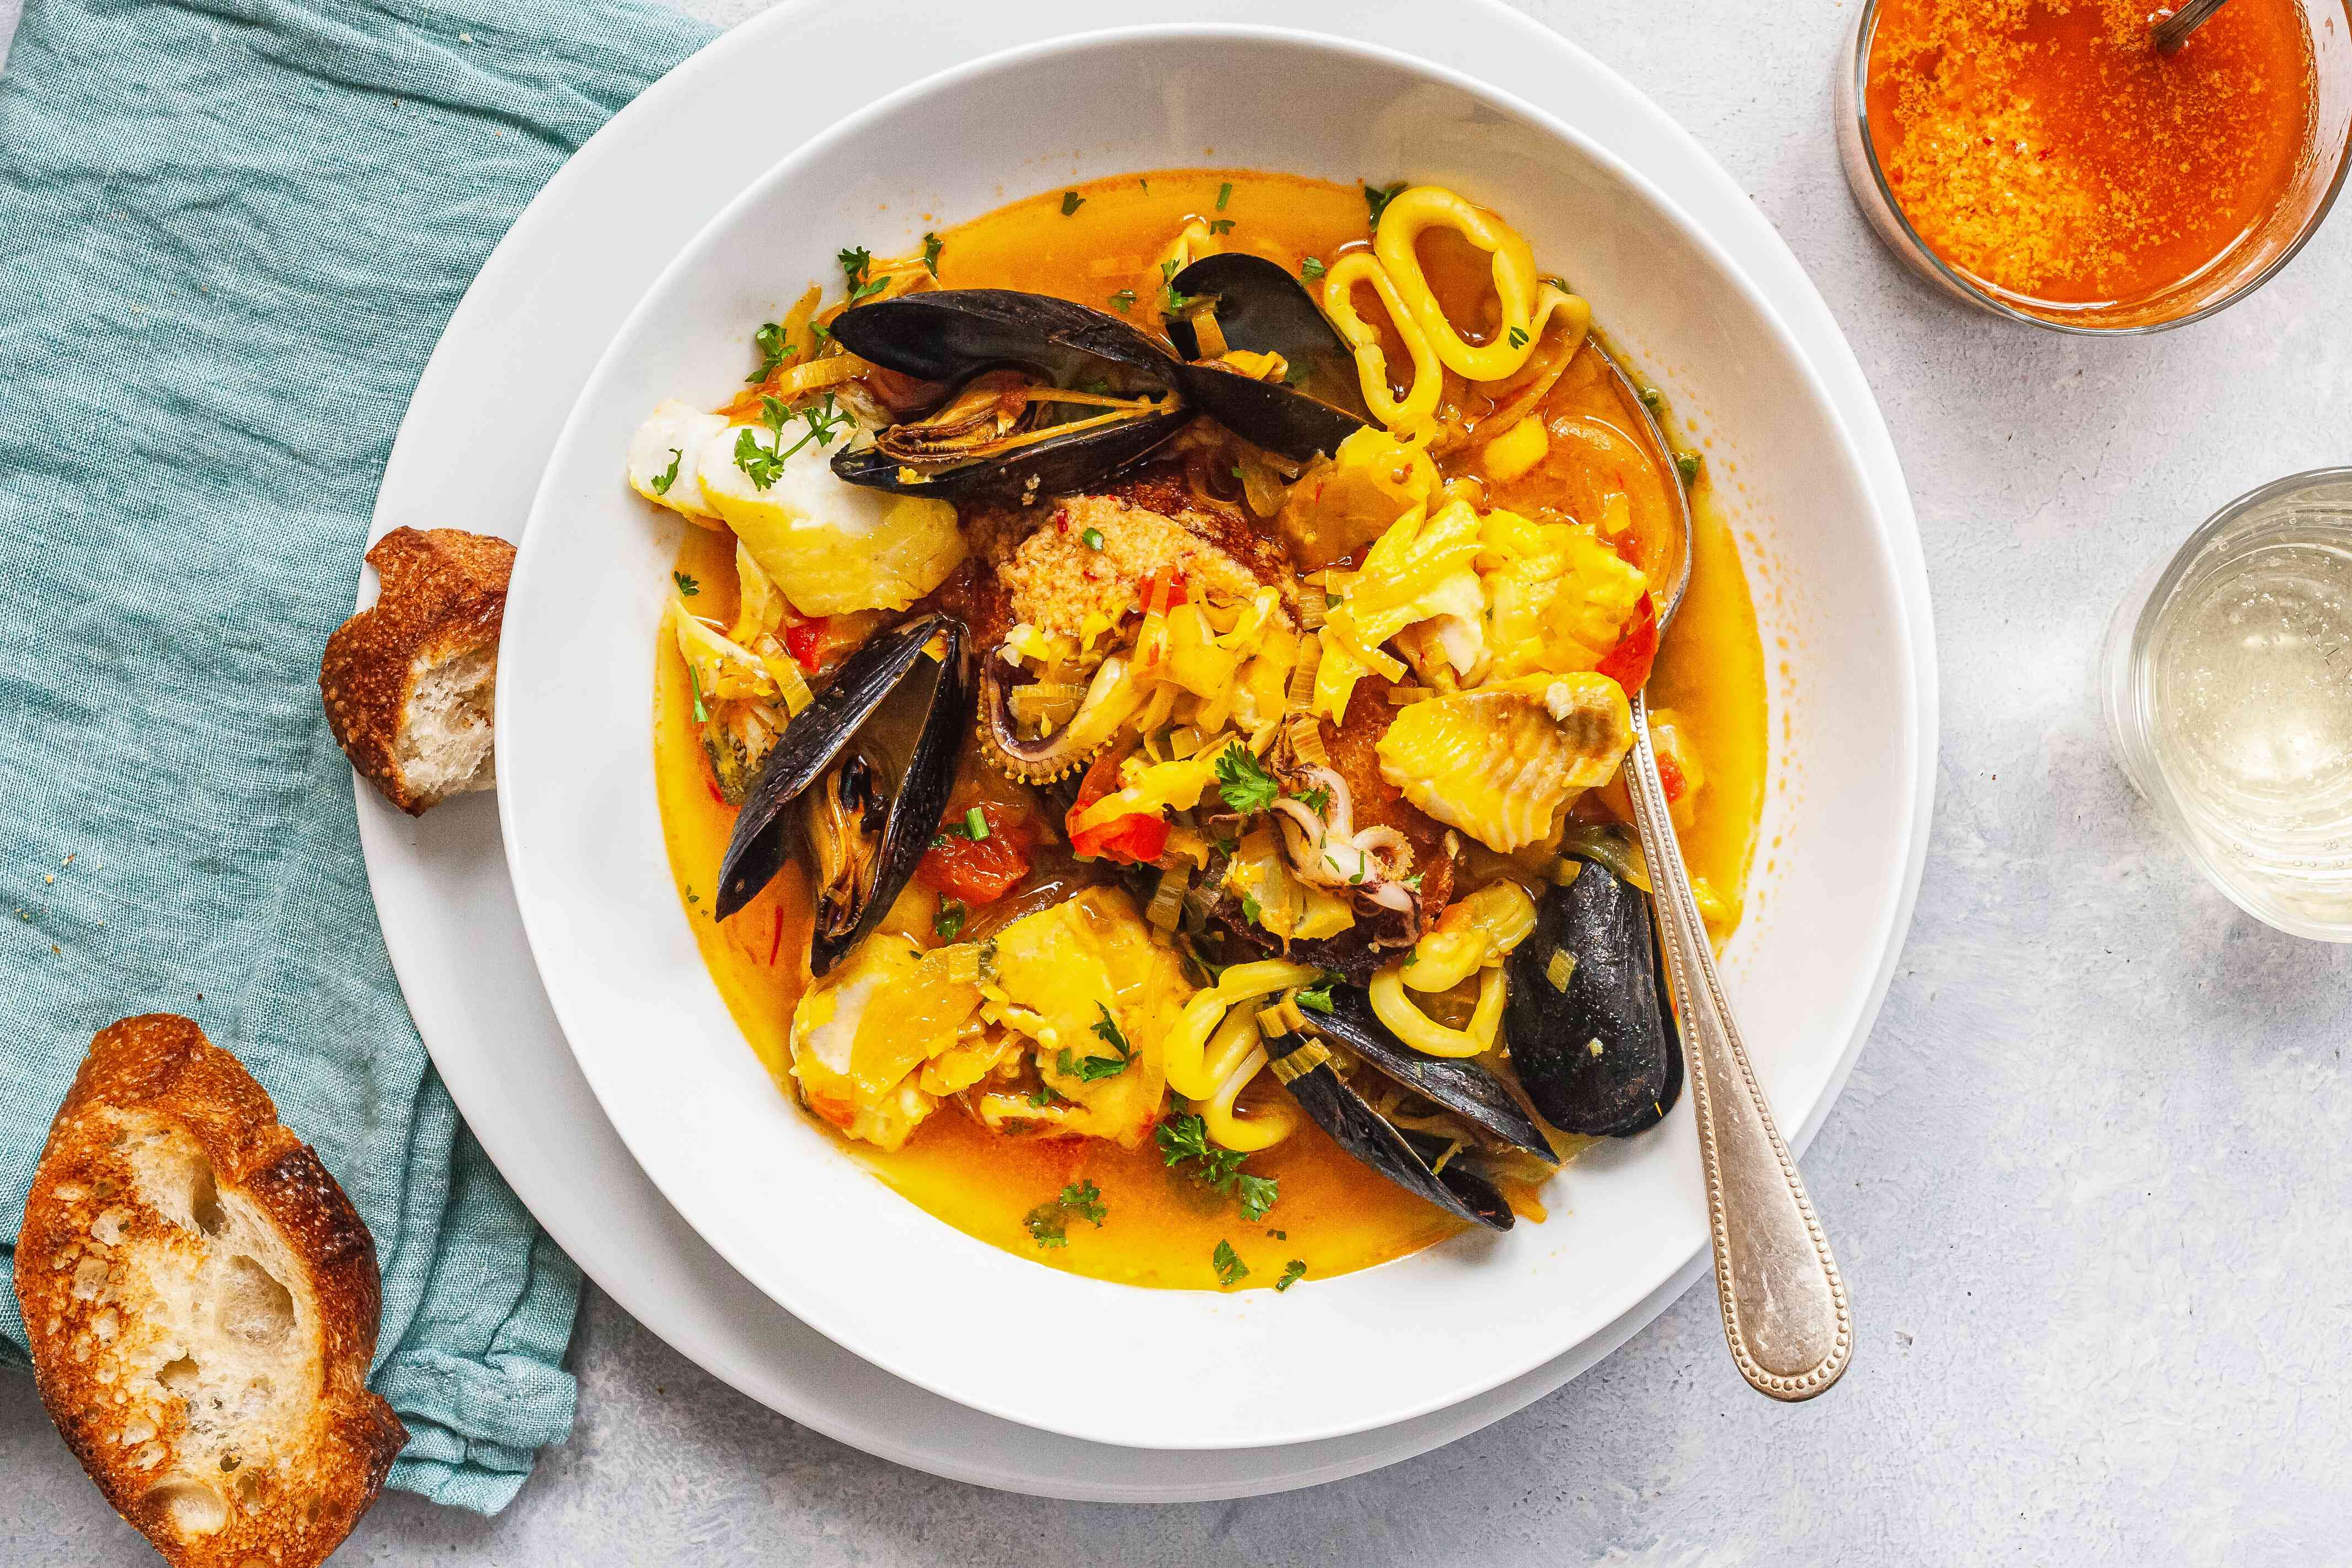 Overhead view of a bowl of bouillabaise and sliced bread.